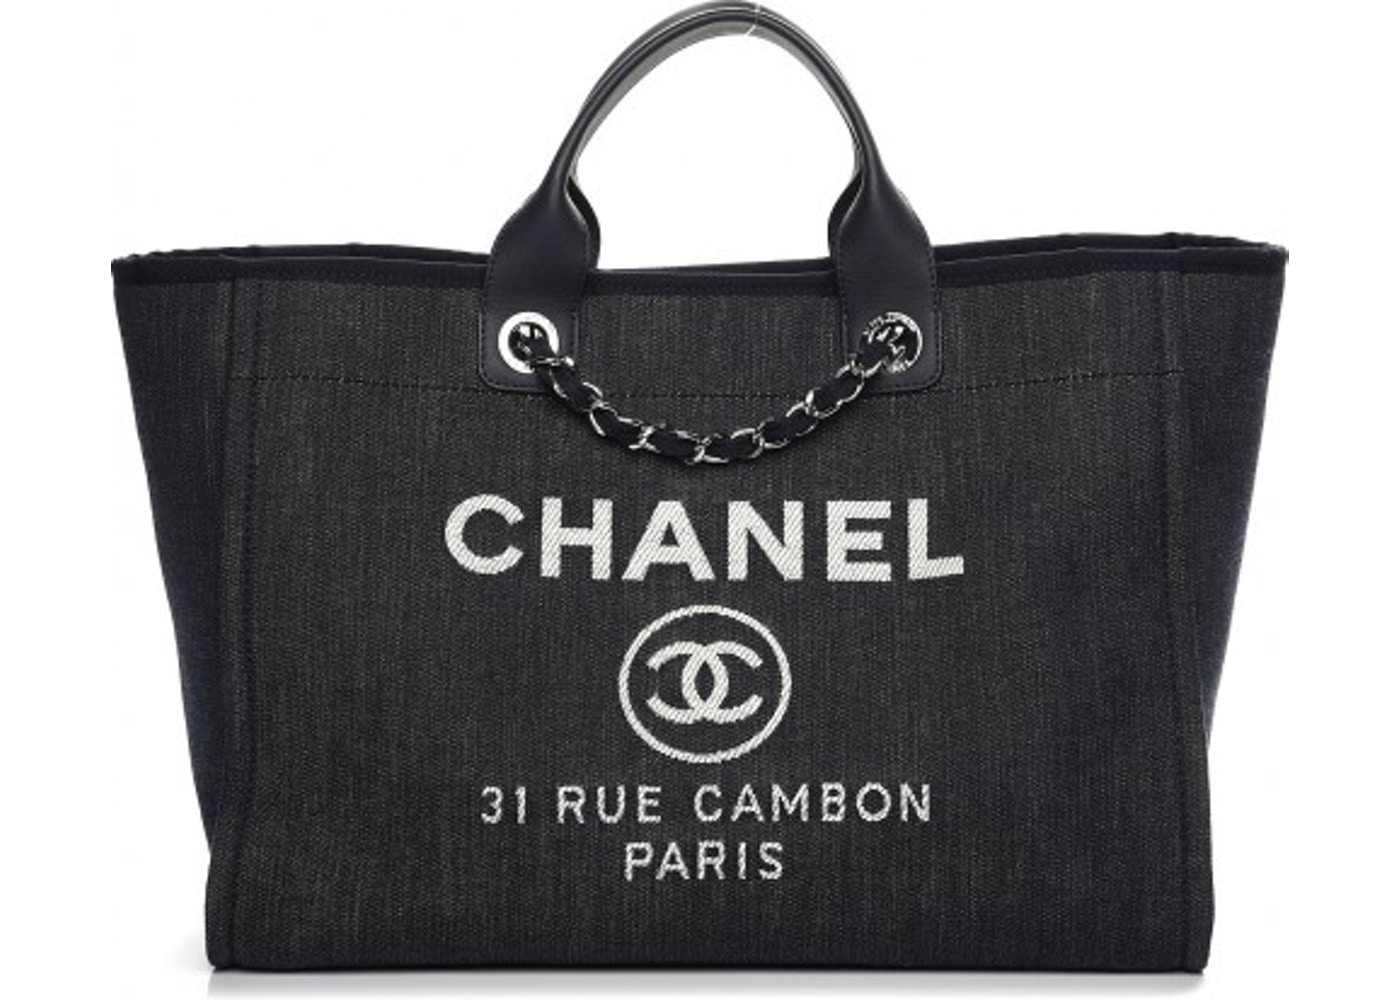 daf2ad36bac7 Chanel Deauville Tote Large Dark Blue. Large Dark Blue